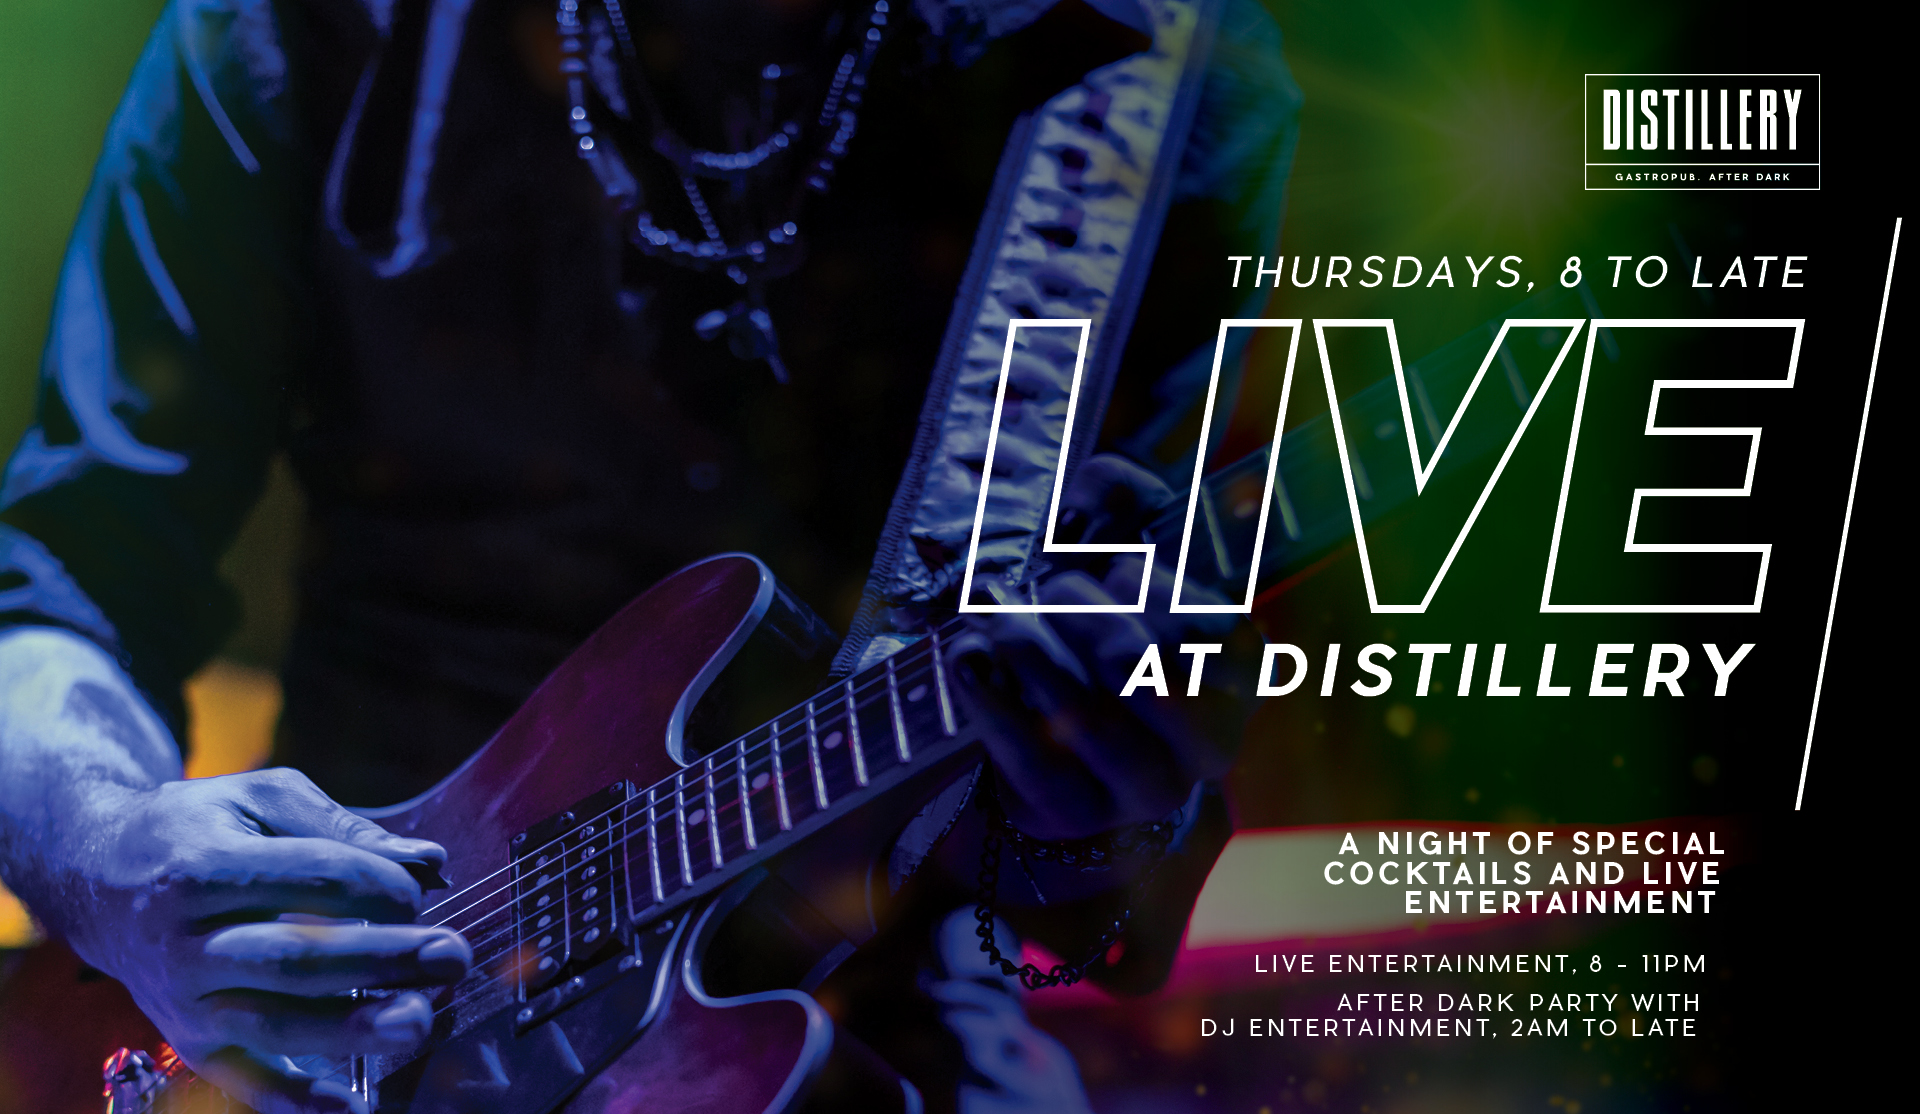 Act Thursday - Distillery Gastropub. After Dark